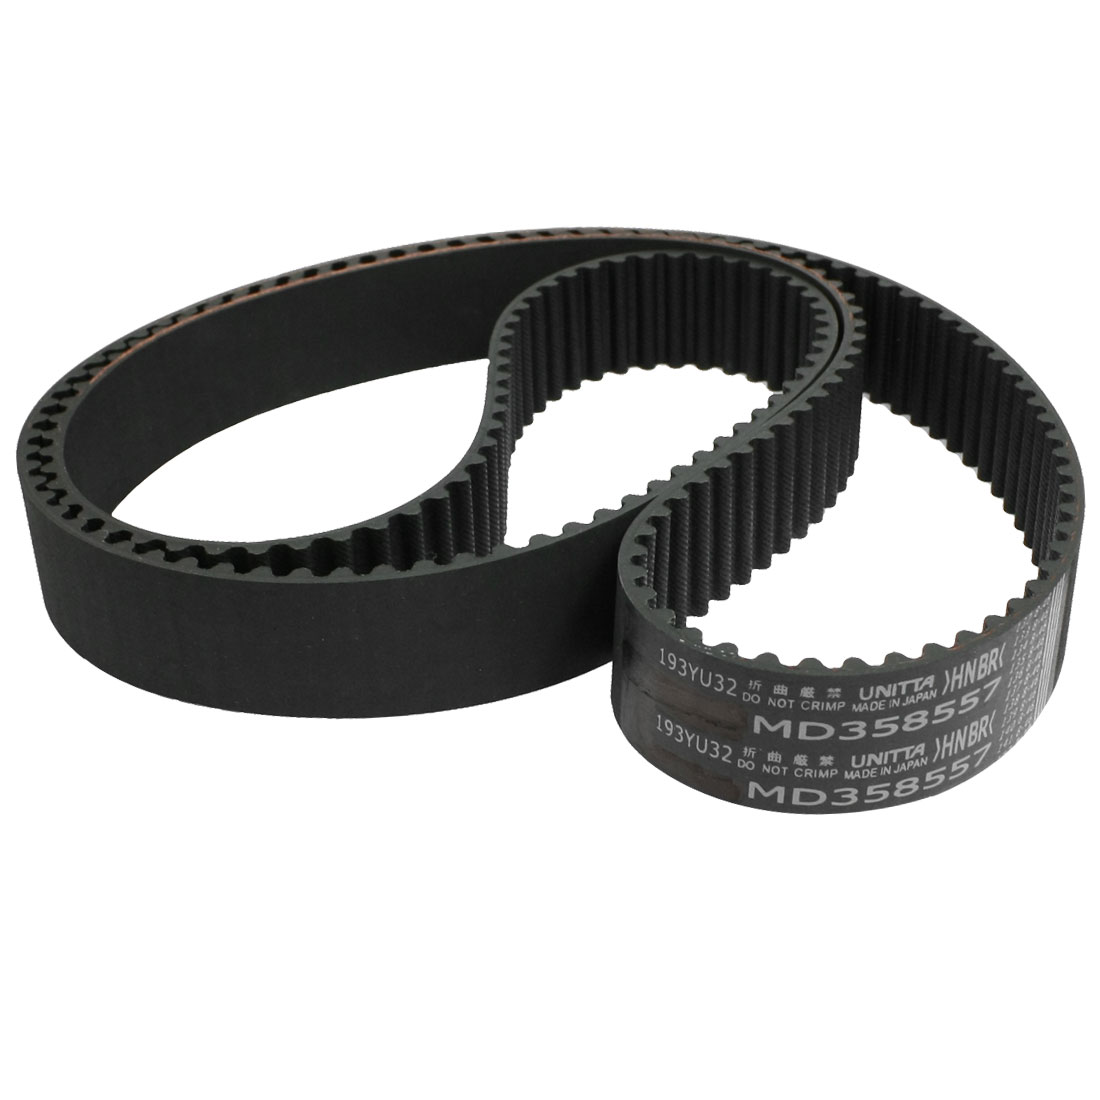 193YU32-S-O Black Rubber 193 Round Tooth Car Timing Belt